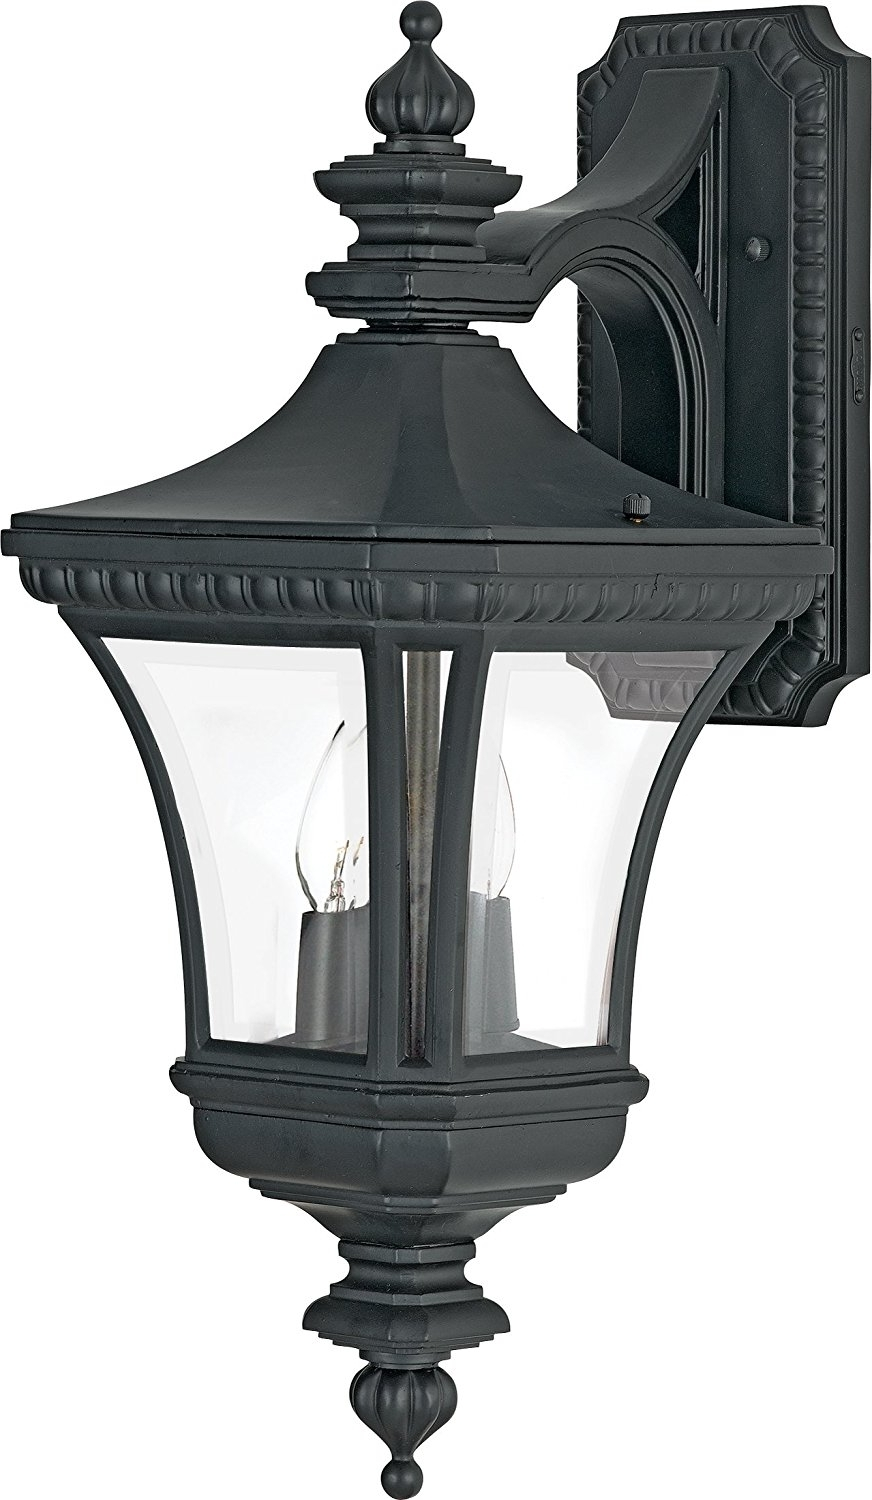 Trendy Quoizel Outdoor Lanterns Inside Black Round Lamp Shades Lantern What Is A Stack Lamps R Us Quoizel (View 16 of 20)